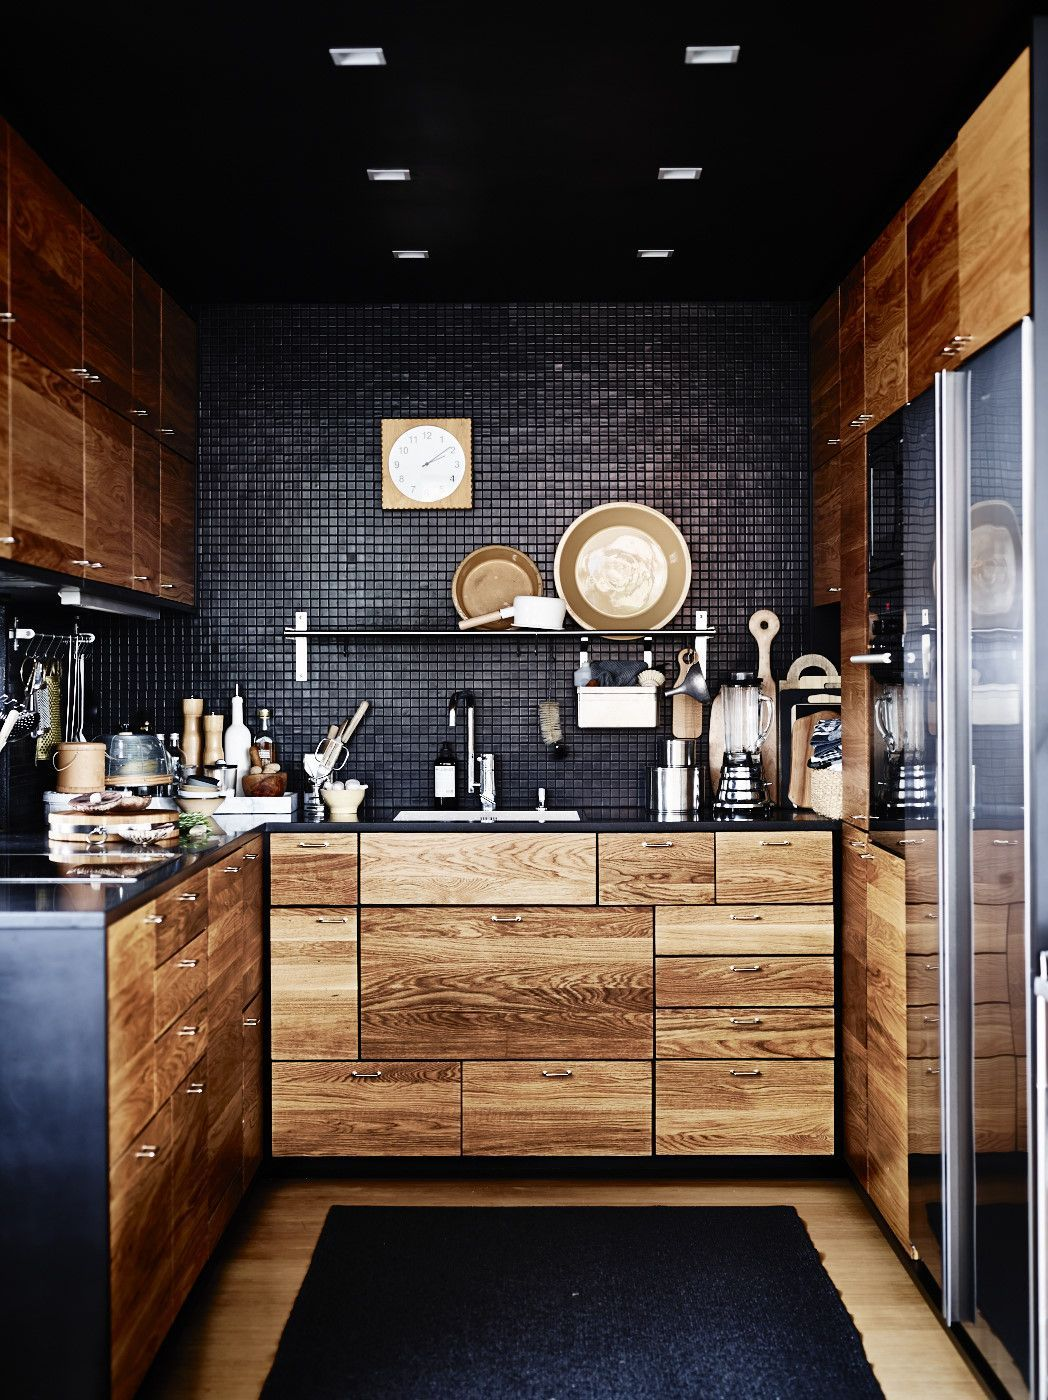 Black Design For Kitchen 53 Stylish Black Kitchen Designs Itty Bitty Kitchen Kitchen